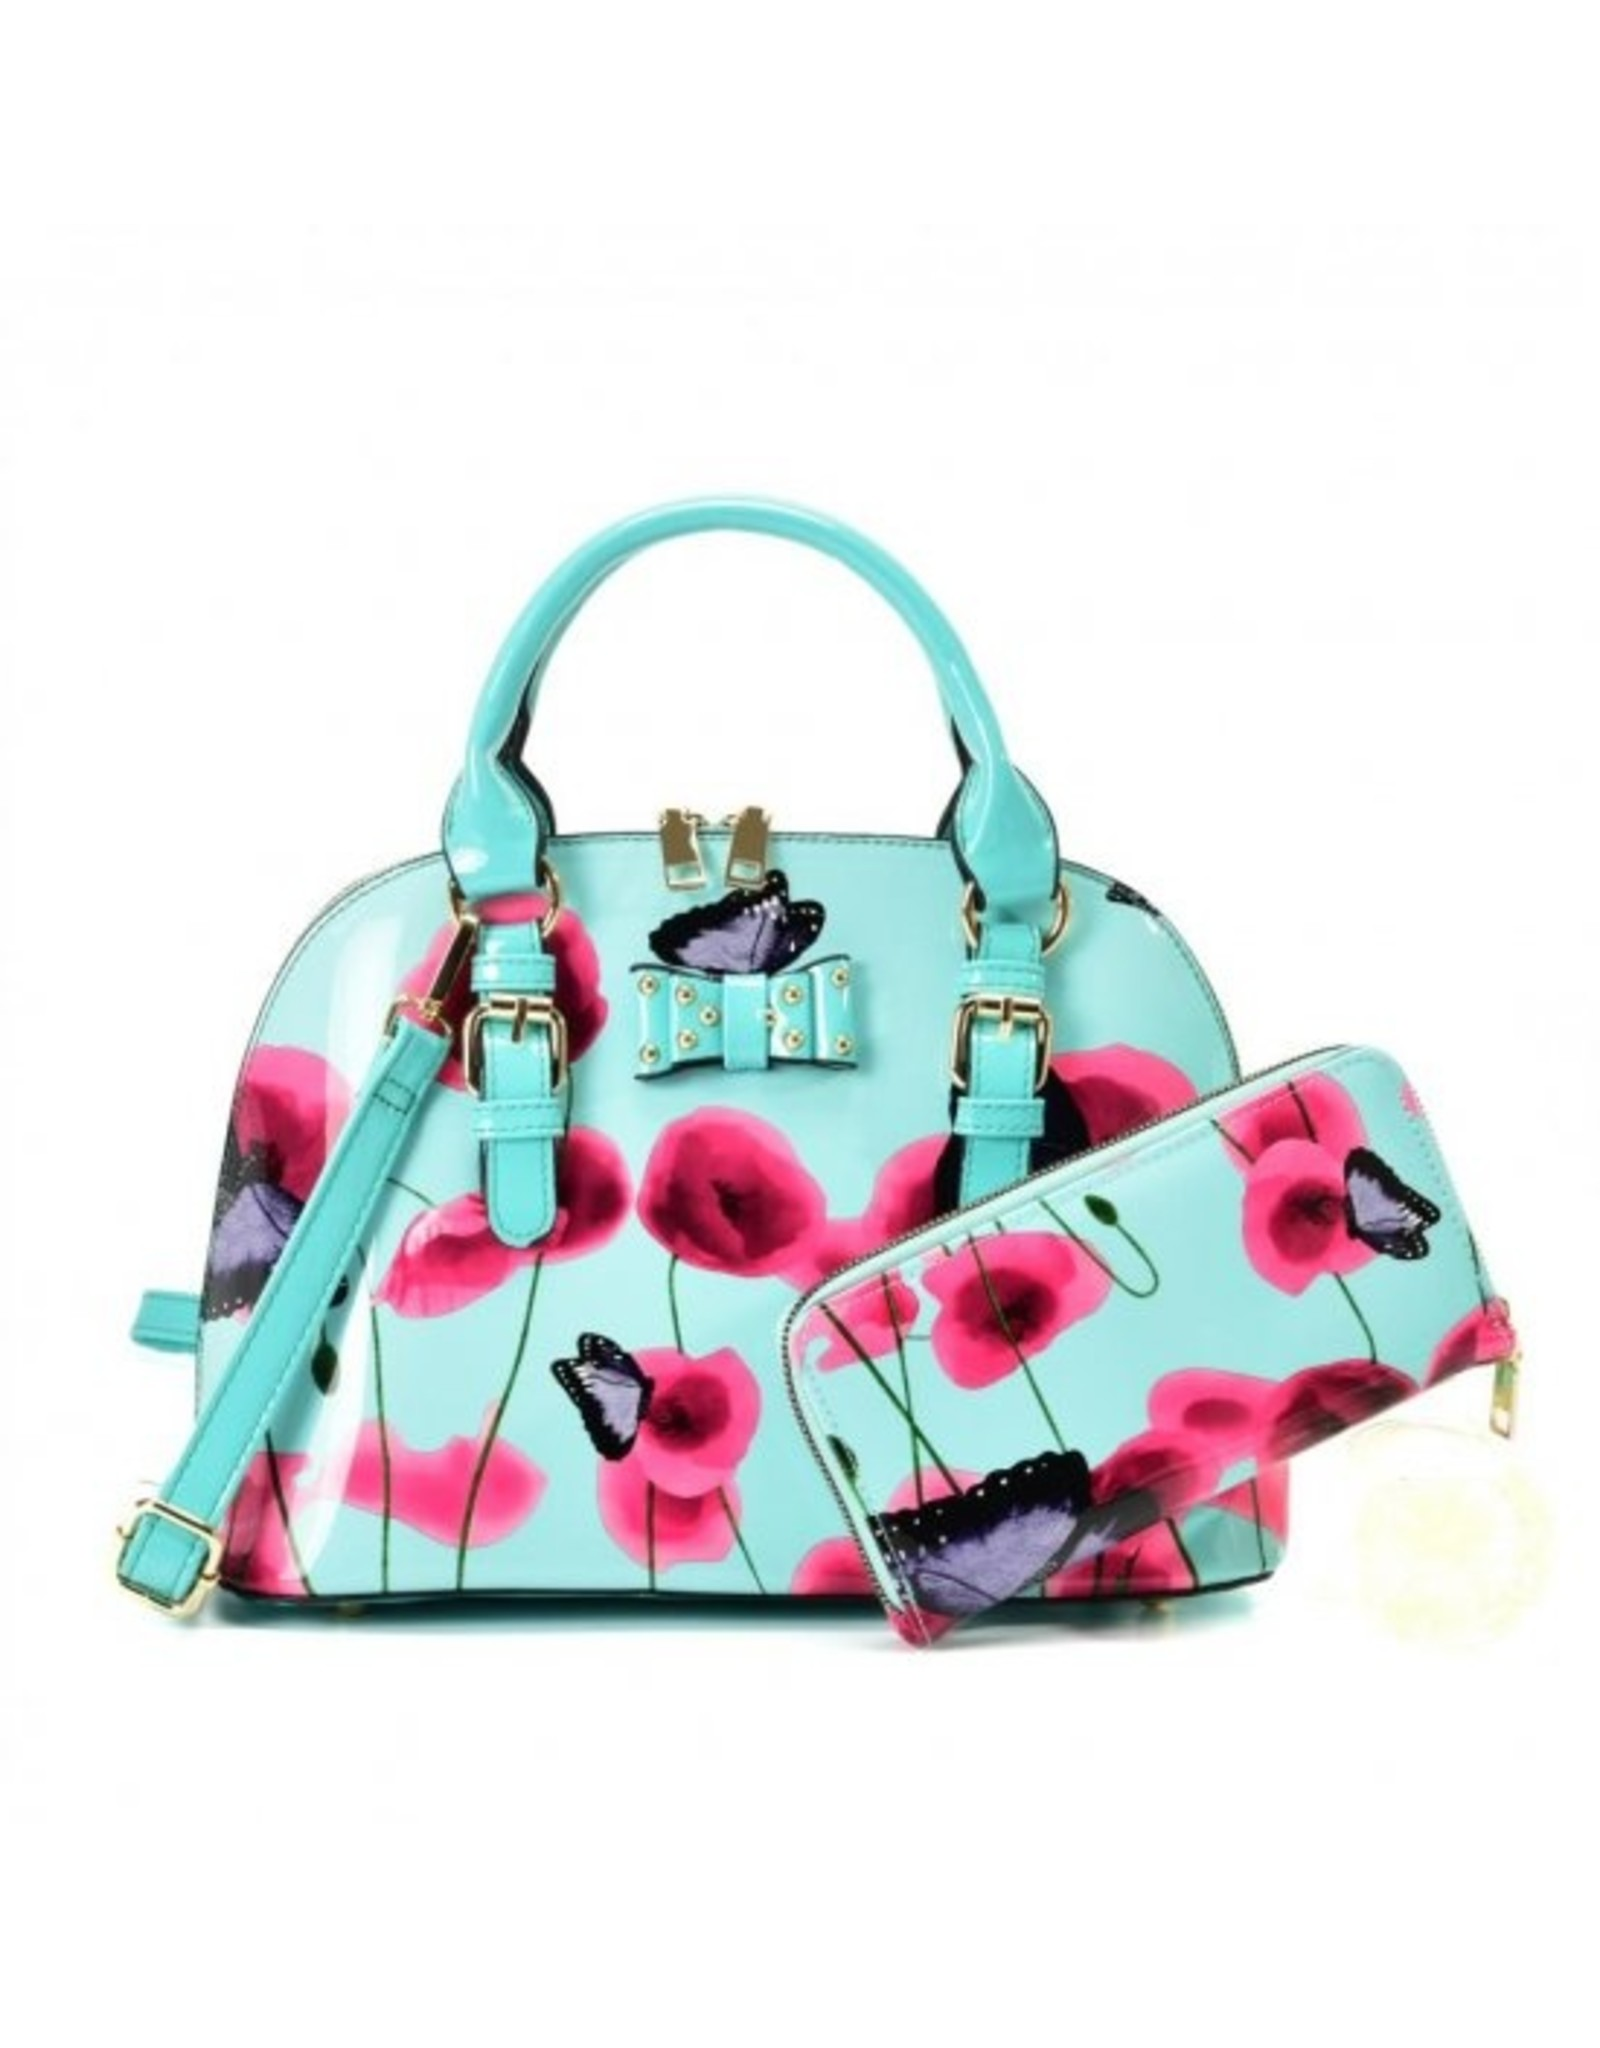 Trukado Fashion bags - Handbag with flowers and butterflies Butterfly Poppy  blue